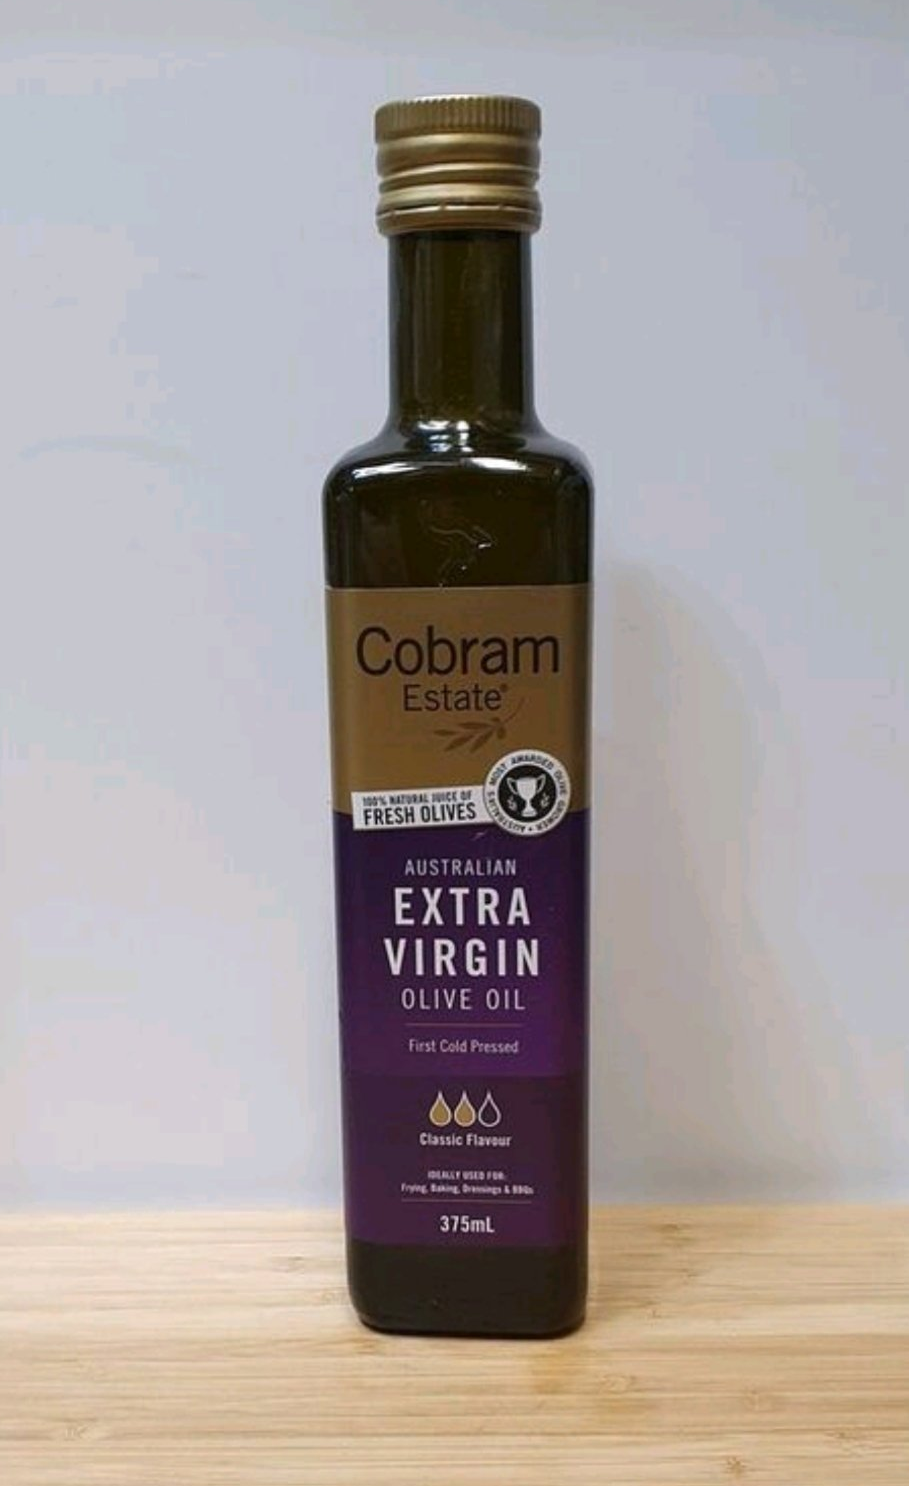 Cobram Extra Virgin Olive Oil - Classic